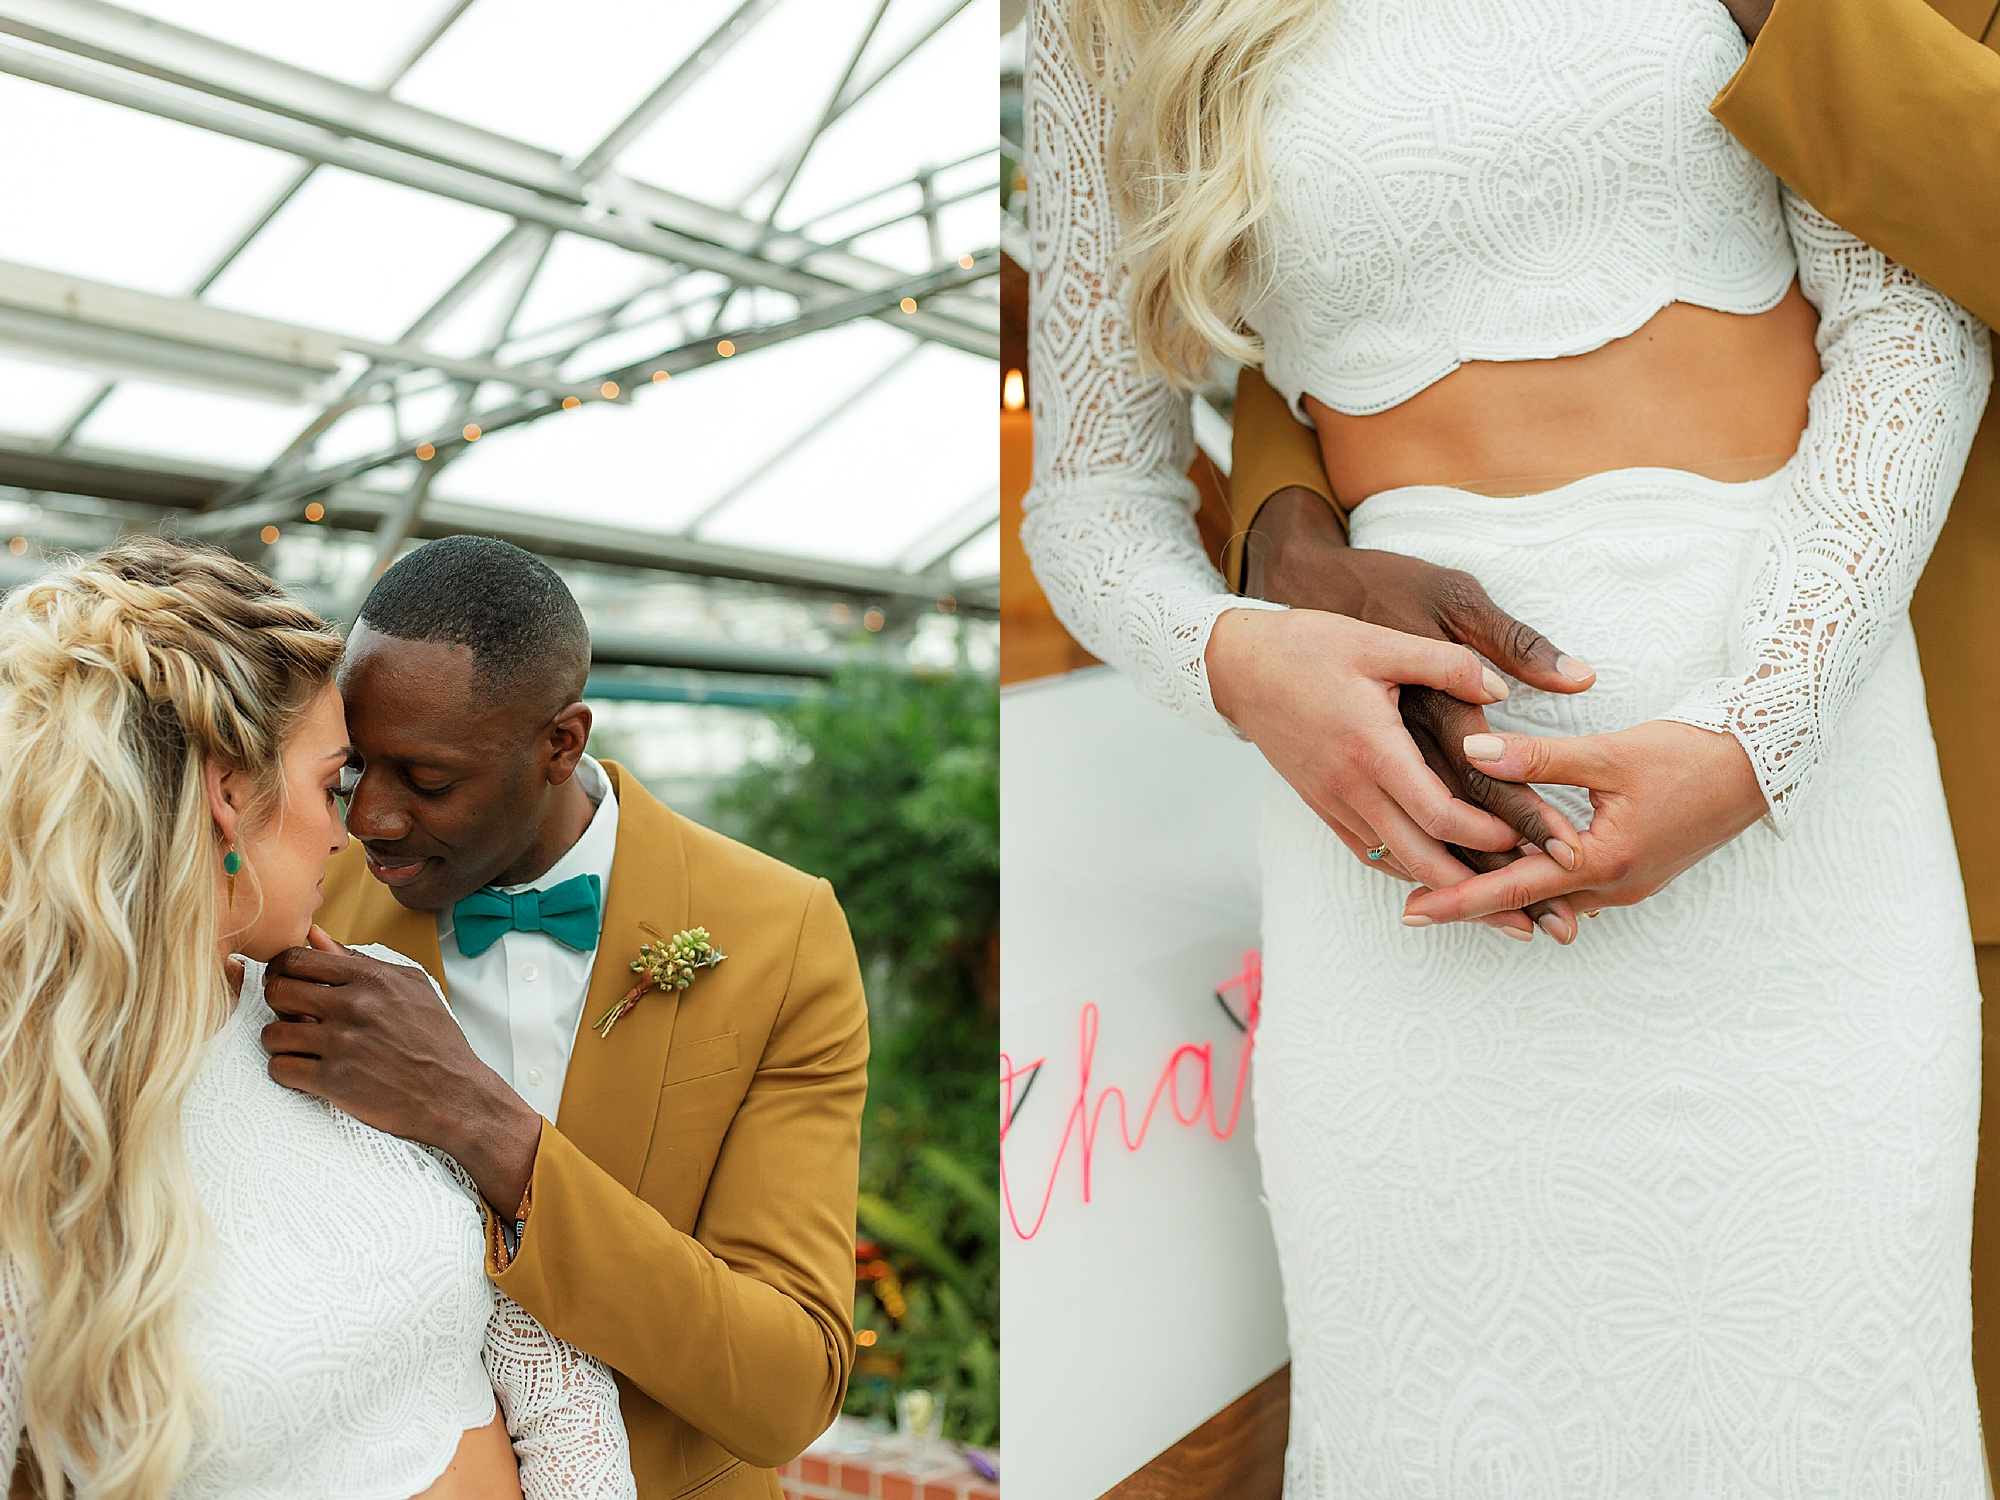 Colorful and Vibrant Wedding Photography at Fairmount Horticultural Center by Magdalena Studios 0017